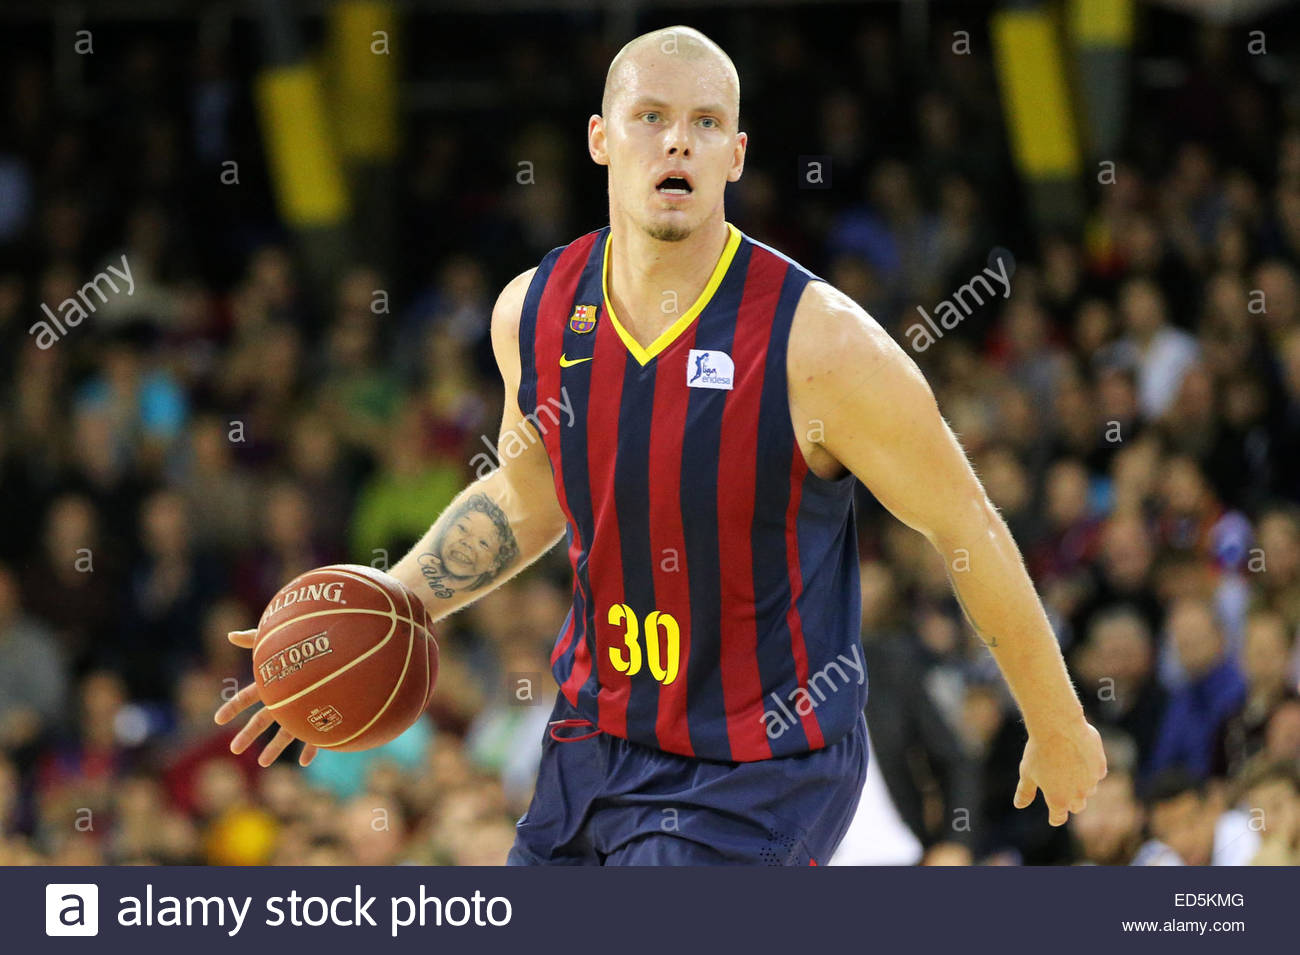 BARCELONA  December28  SPAIN : Maciej Lampe In The Match Between FC  Barcelona And Real Madrid, Forthe Week 13 Of The Endesa League Basketball